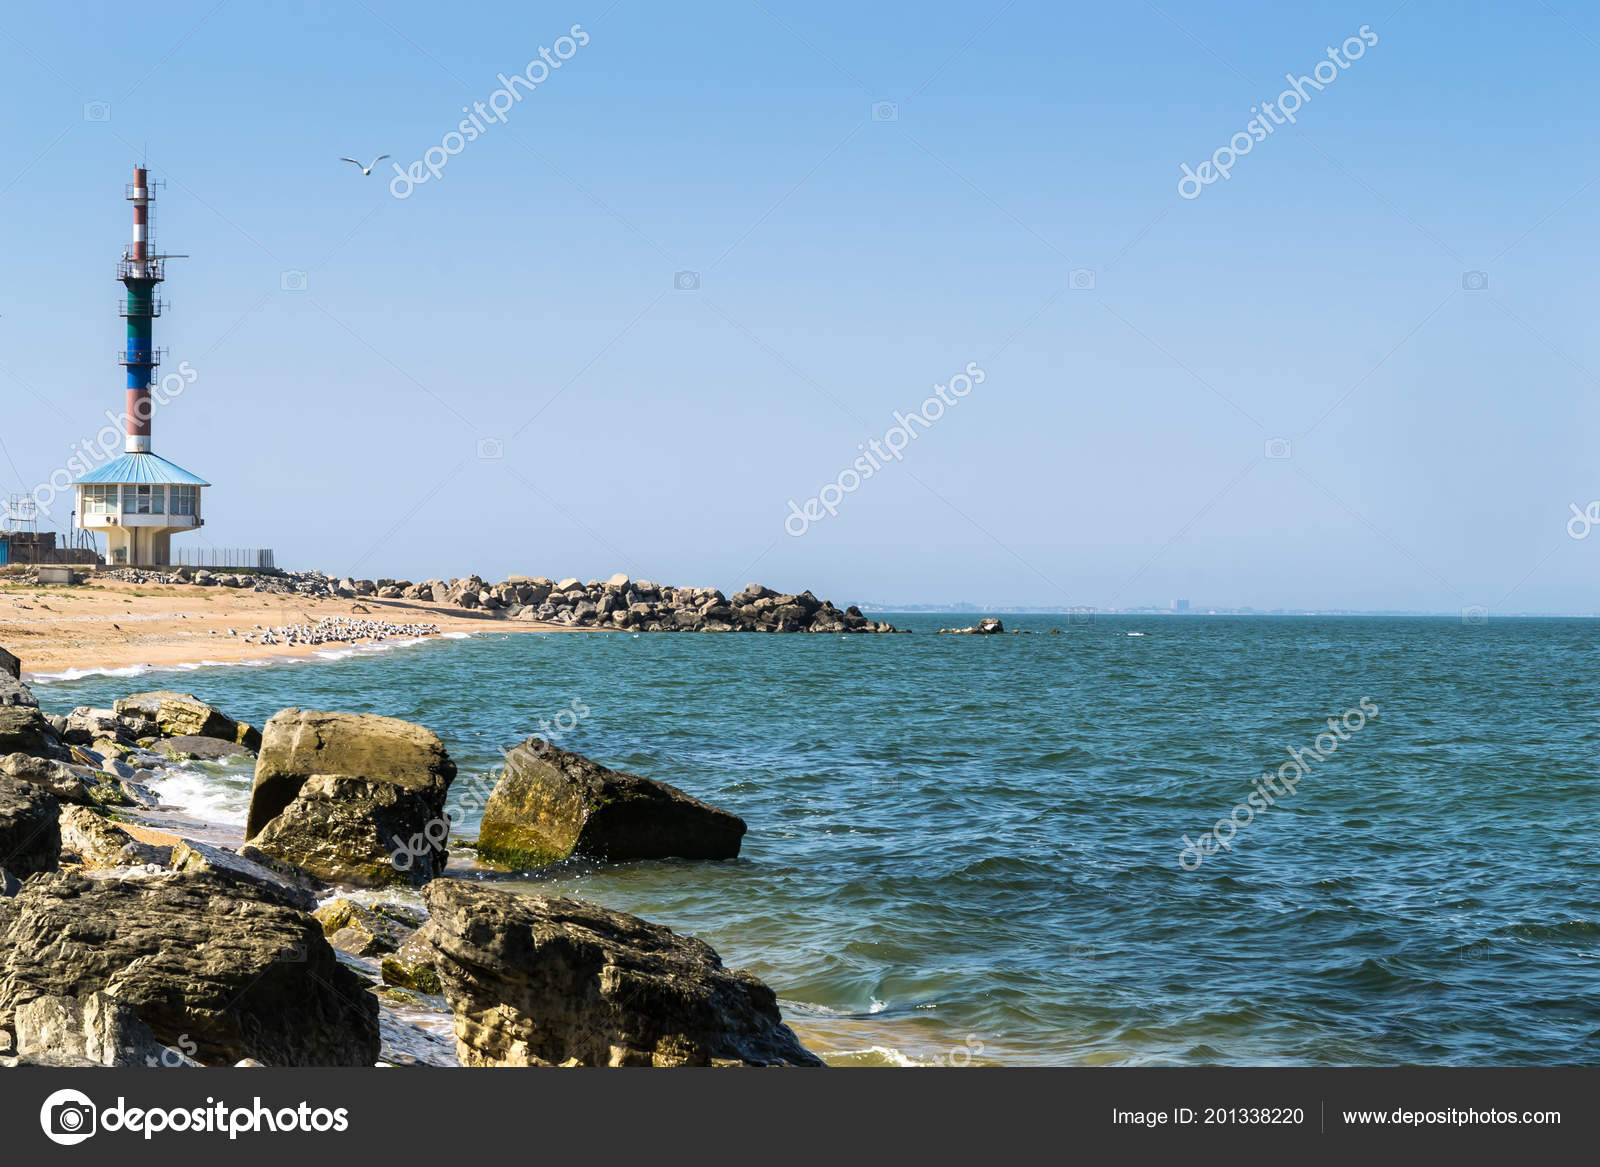 Lighthouse Background Black Sea Coast Lighthouse Background Stock Photo Bozhkovr